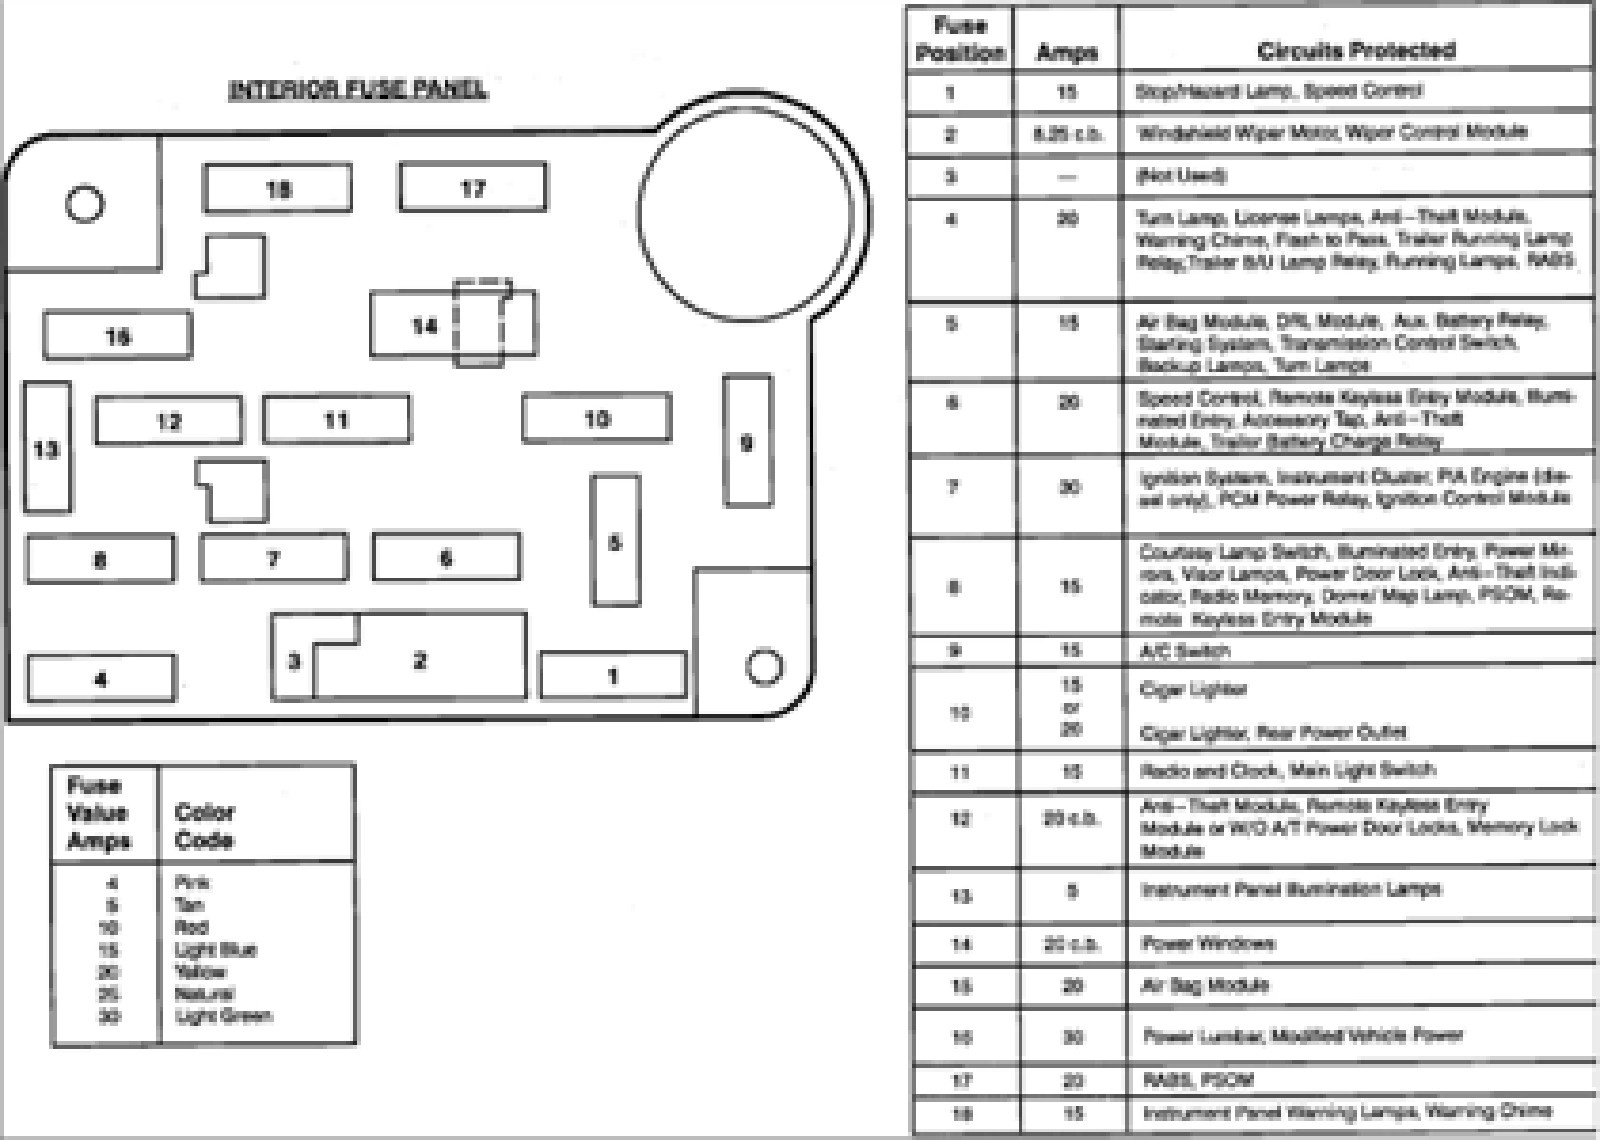 Pump Fuse Box Wiring Diagram Libraries 1978 Ford F150 Truck 1997 F 150 Fuel Relay On Chevy Diagram91